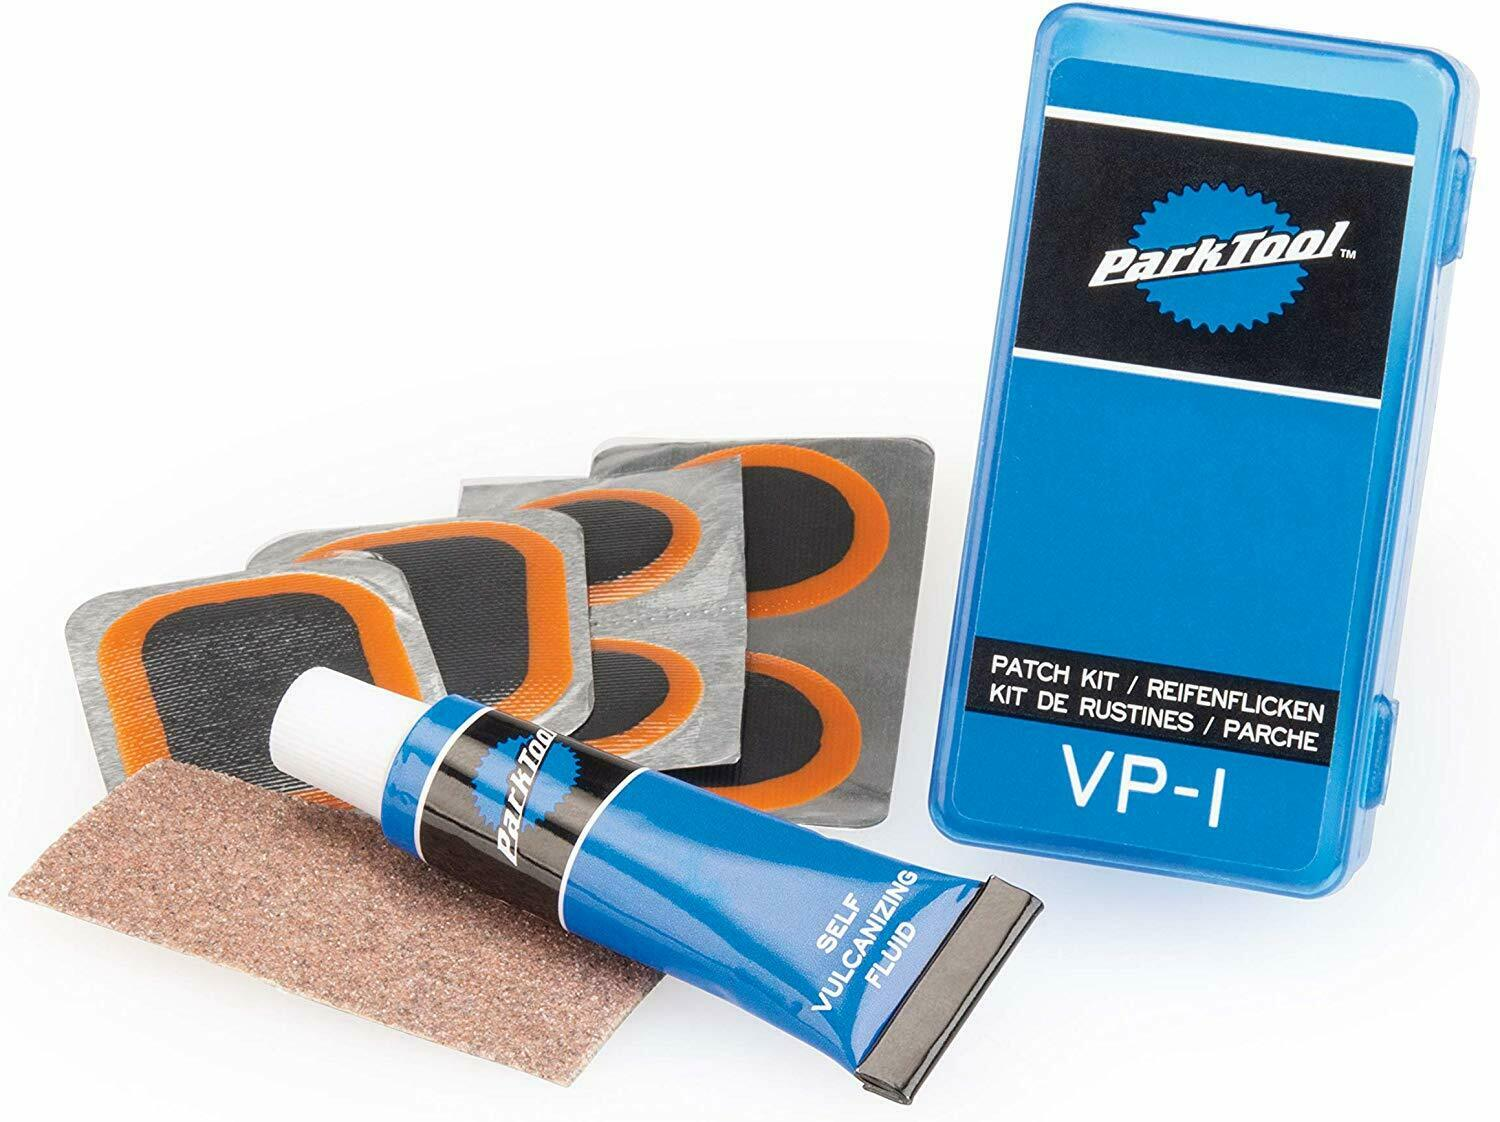 Park Tool VP-1 Vulcanizing Patch Kit for for Bicycle Tube Re